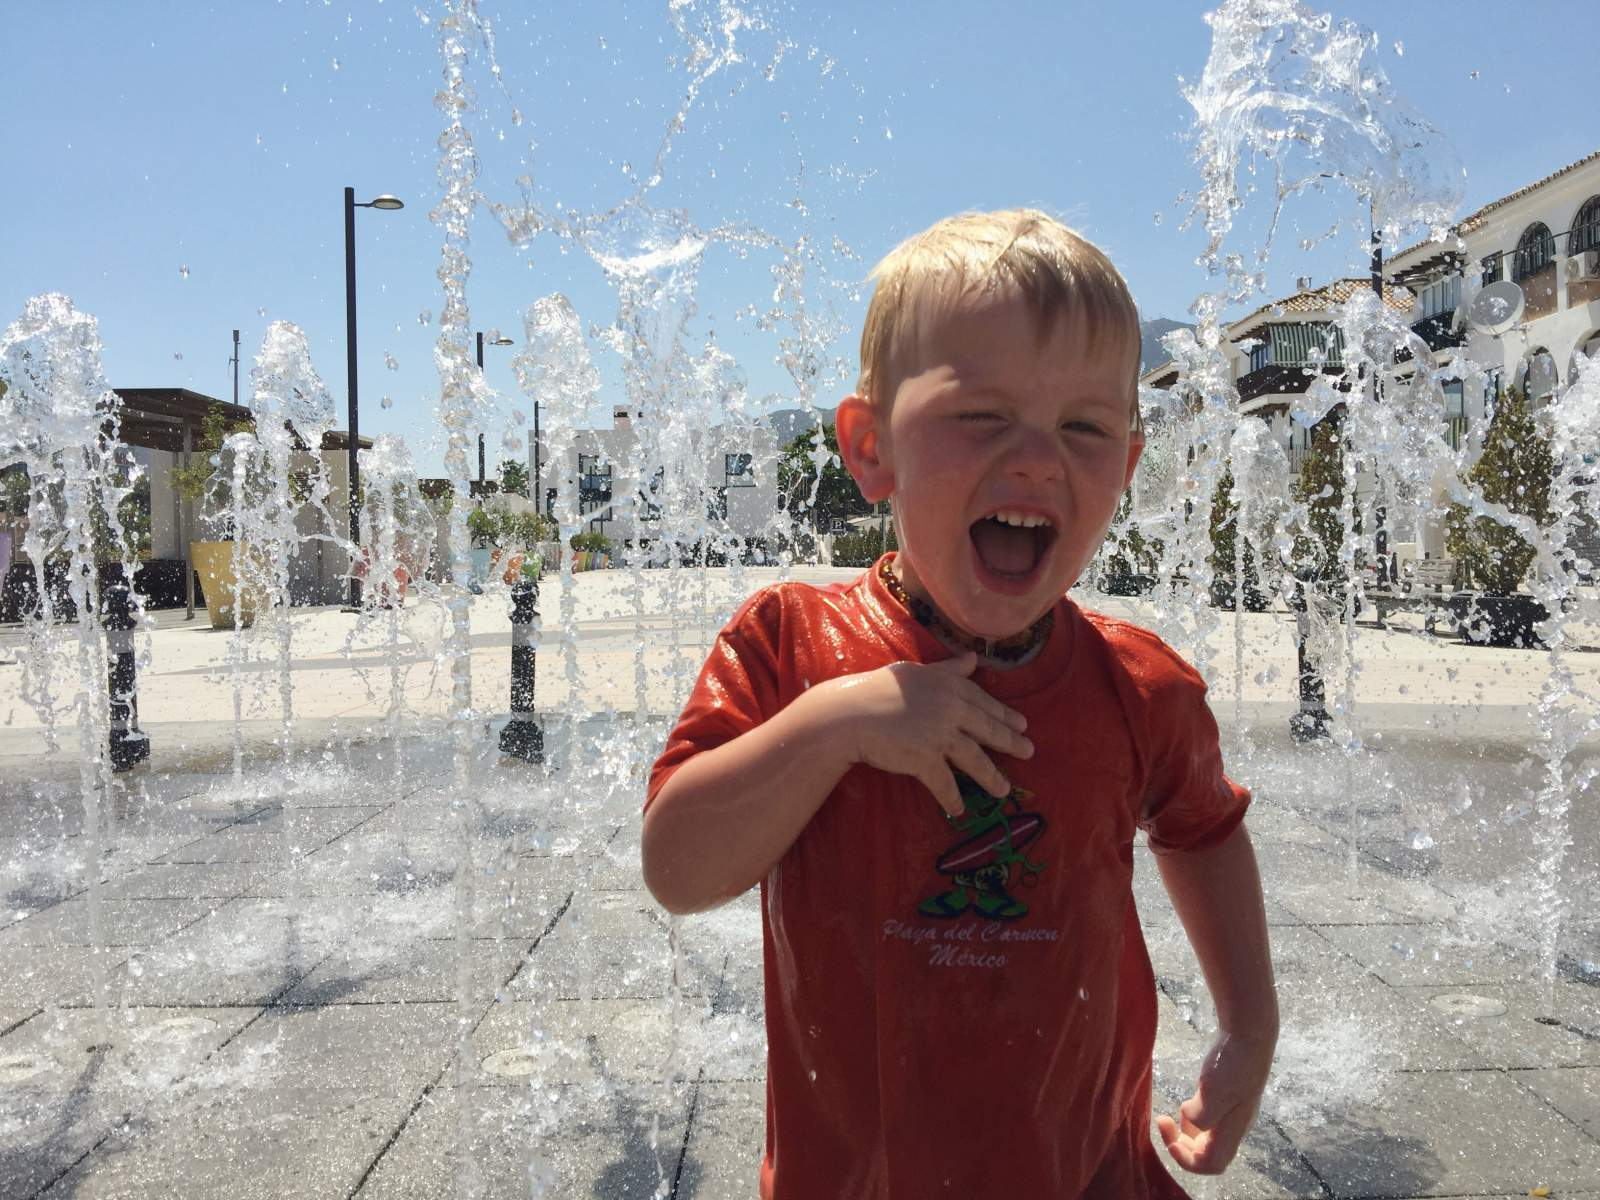 enjoying the fountains in benalmadena